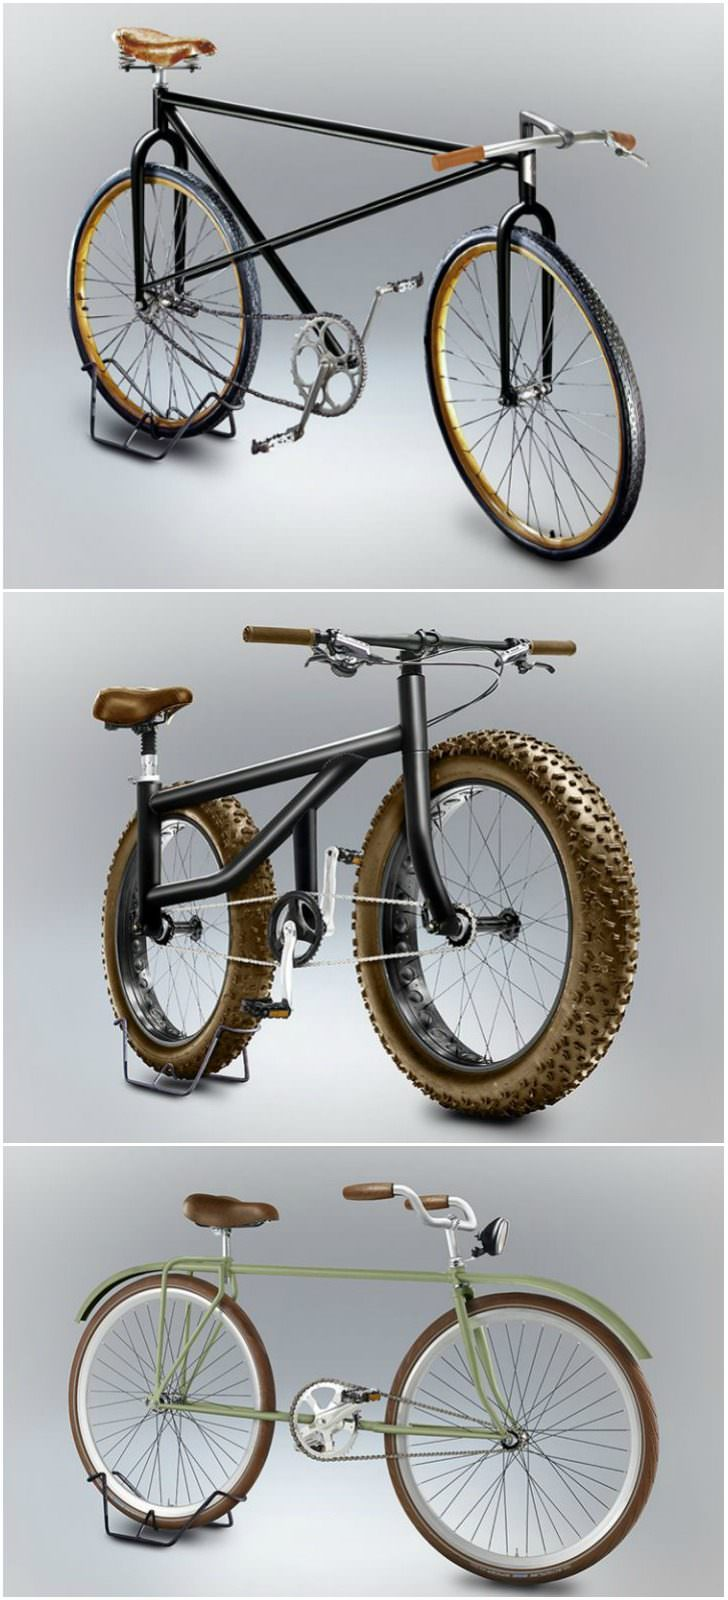 Velocipedia: Imagine That Bikes Designed by Amateurs Exist in Real Life Bike Design